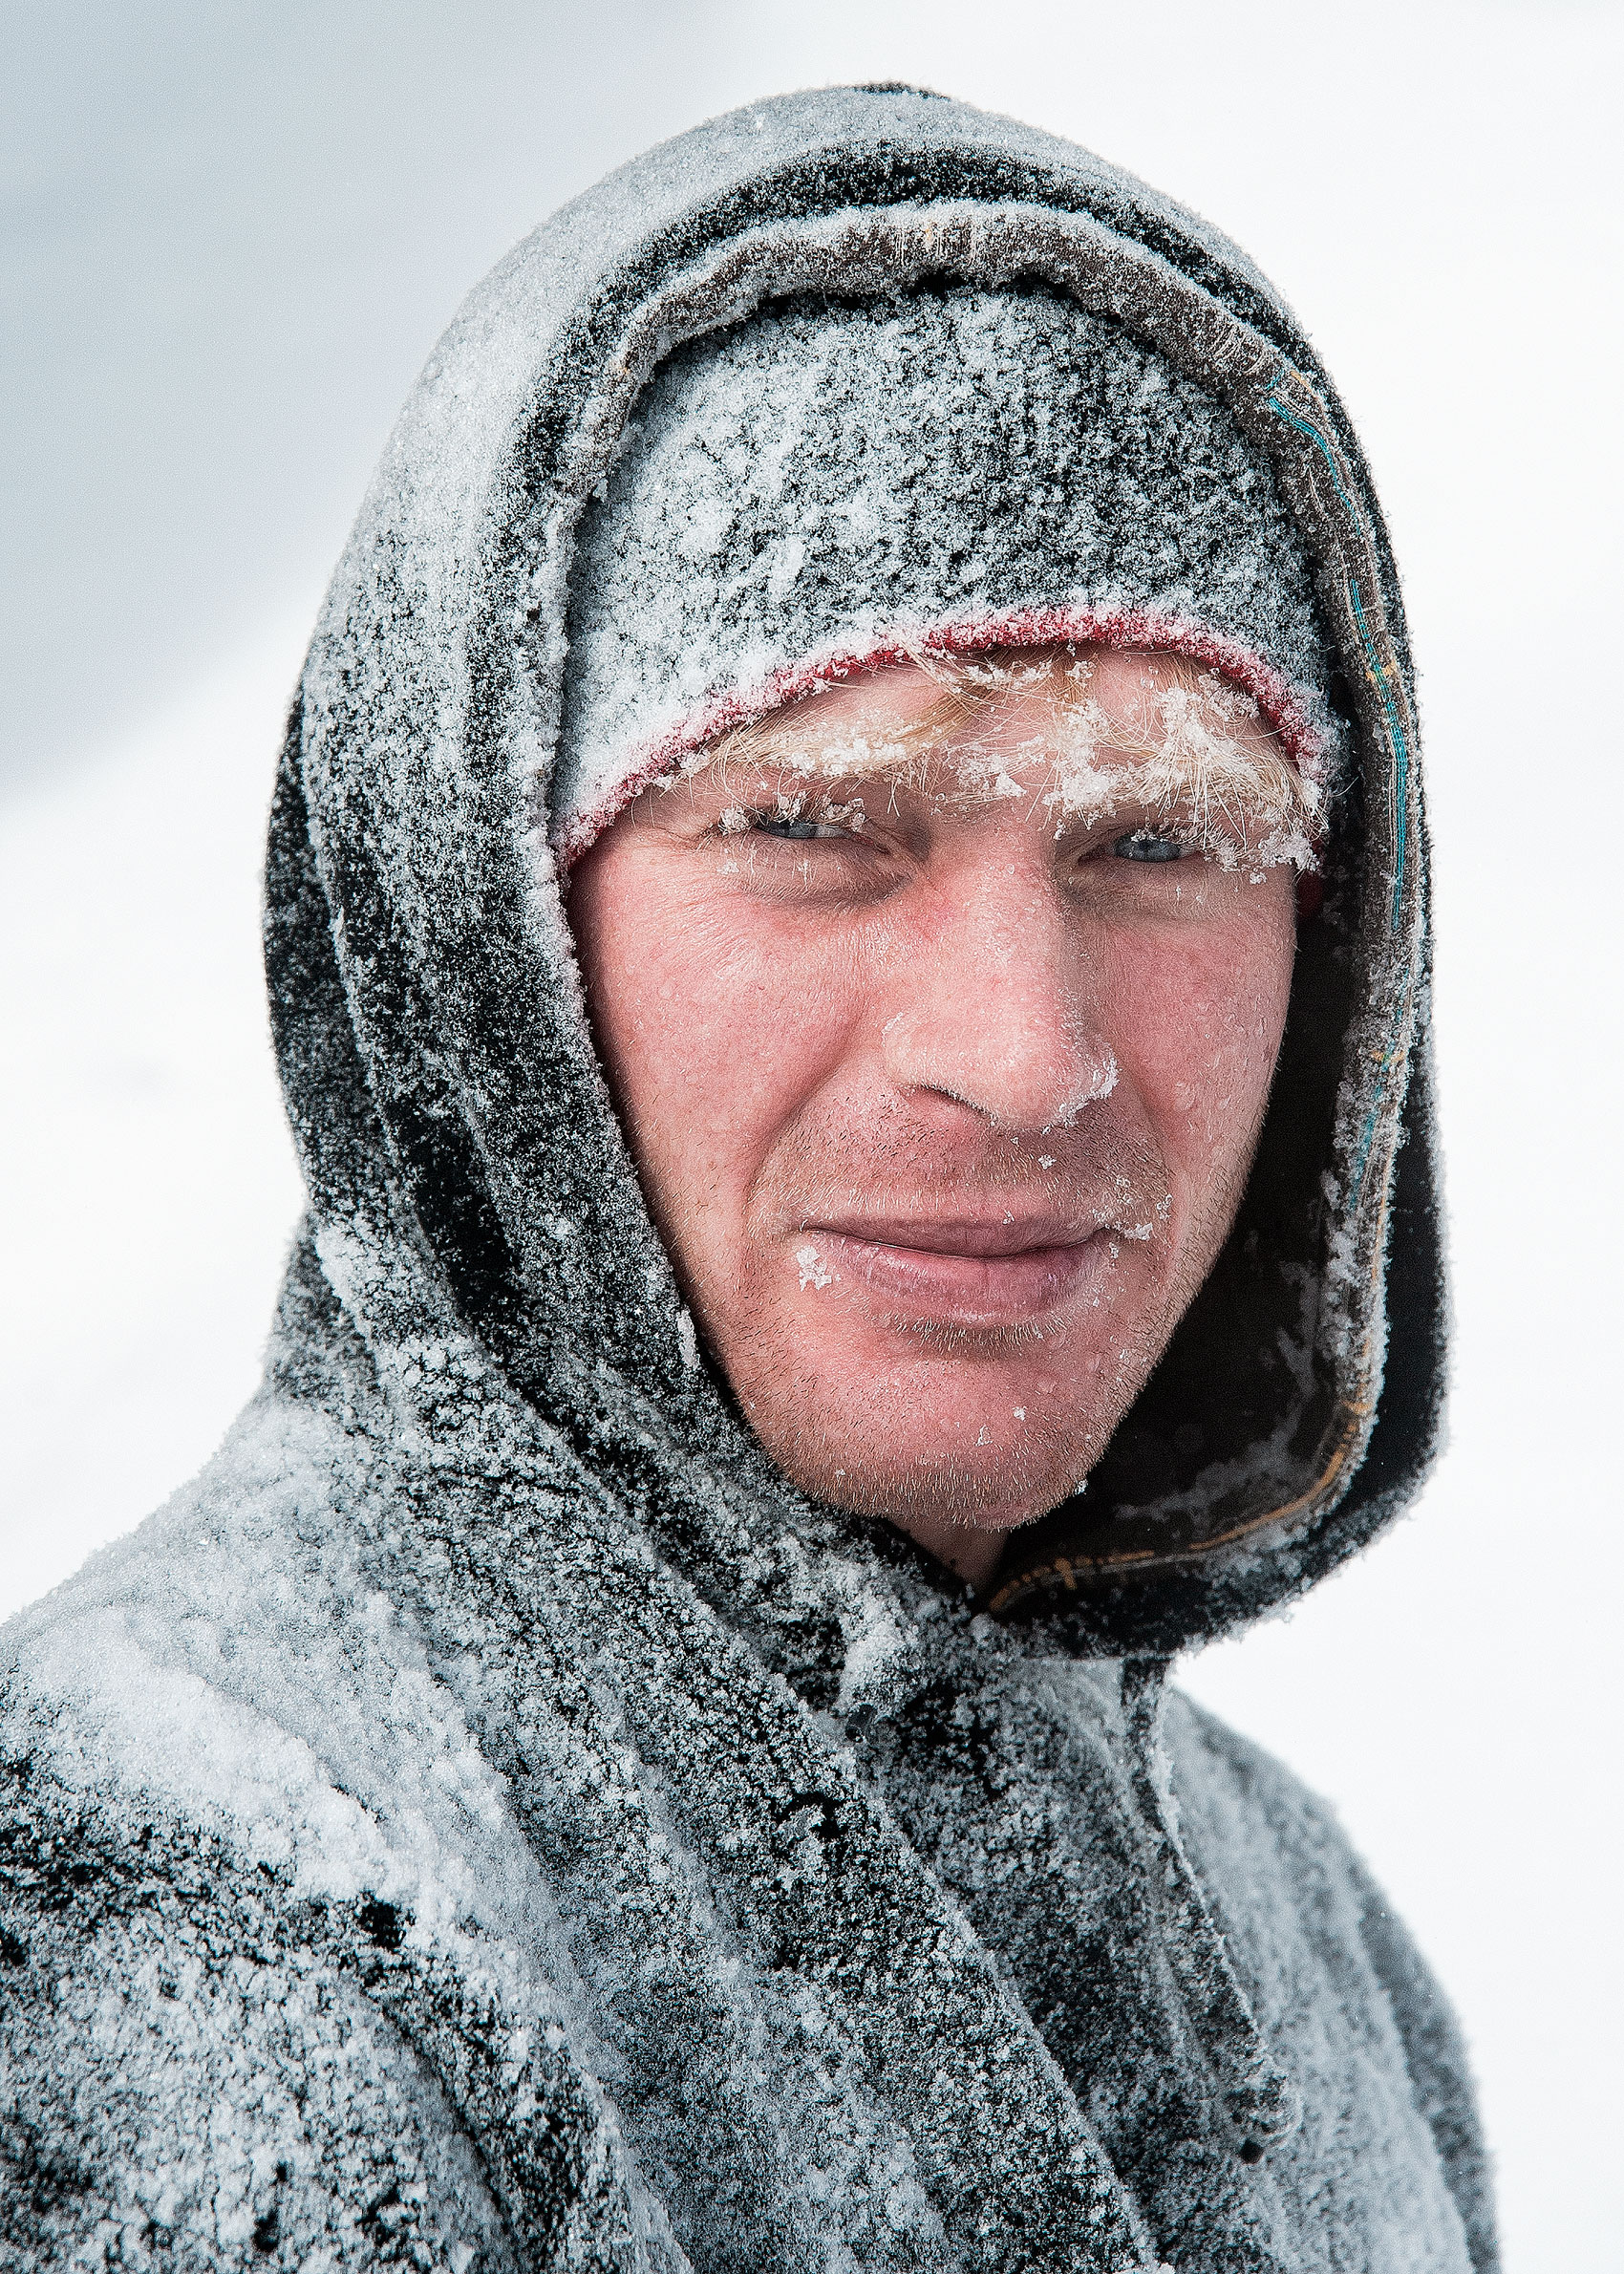 Gerry Schlegel, Surfer, Portraitfoto, SaasFee, Willi Nothers